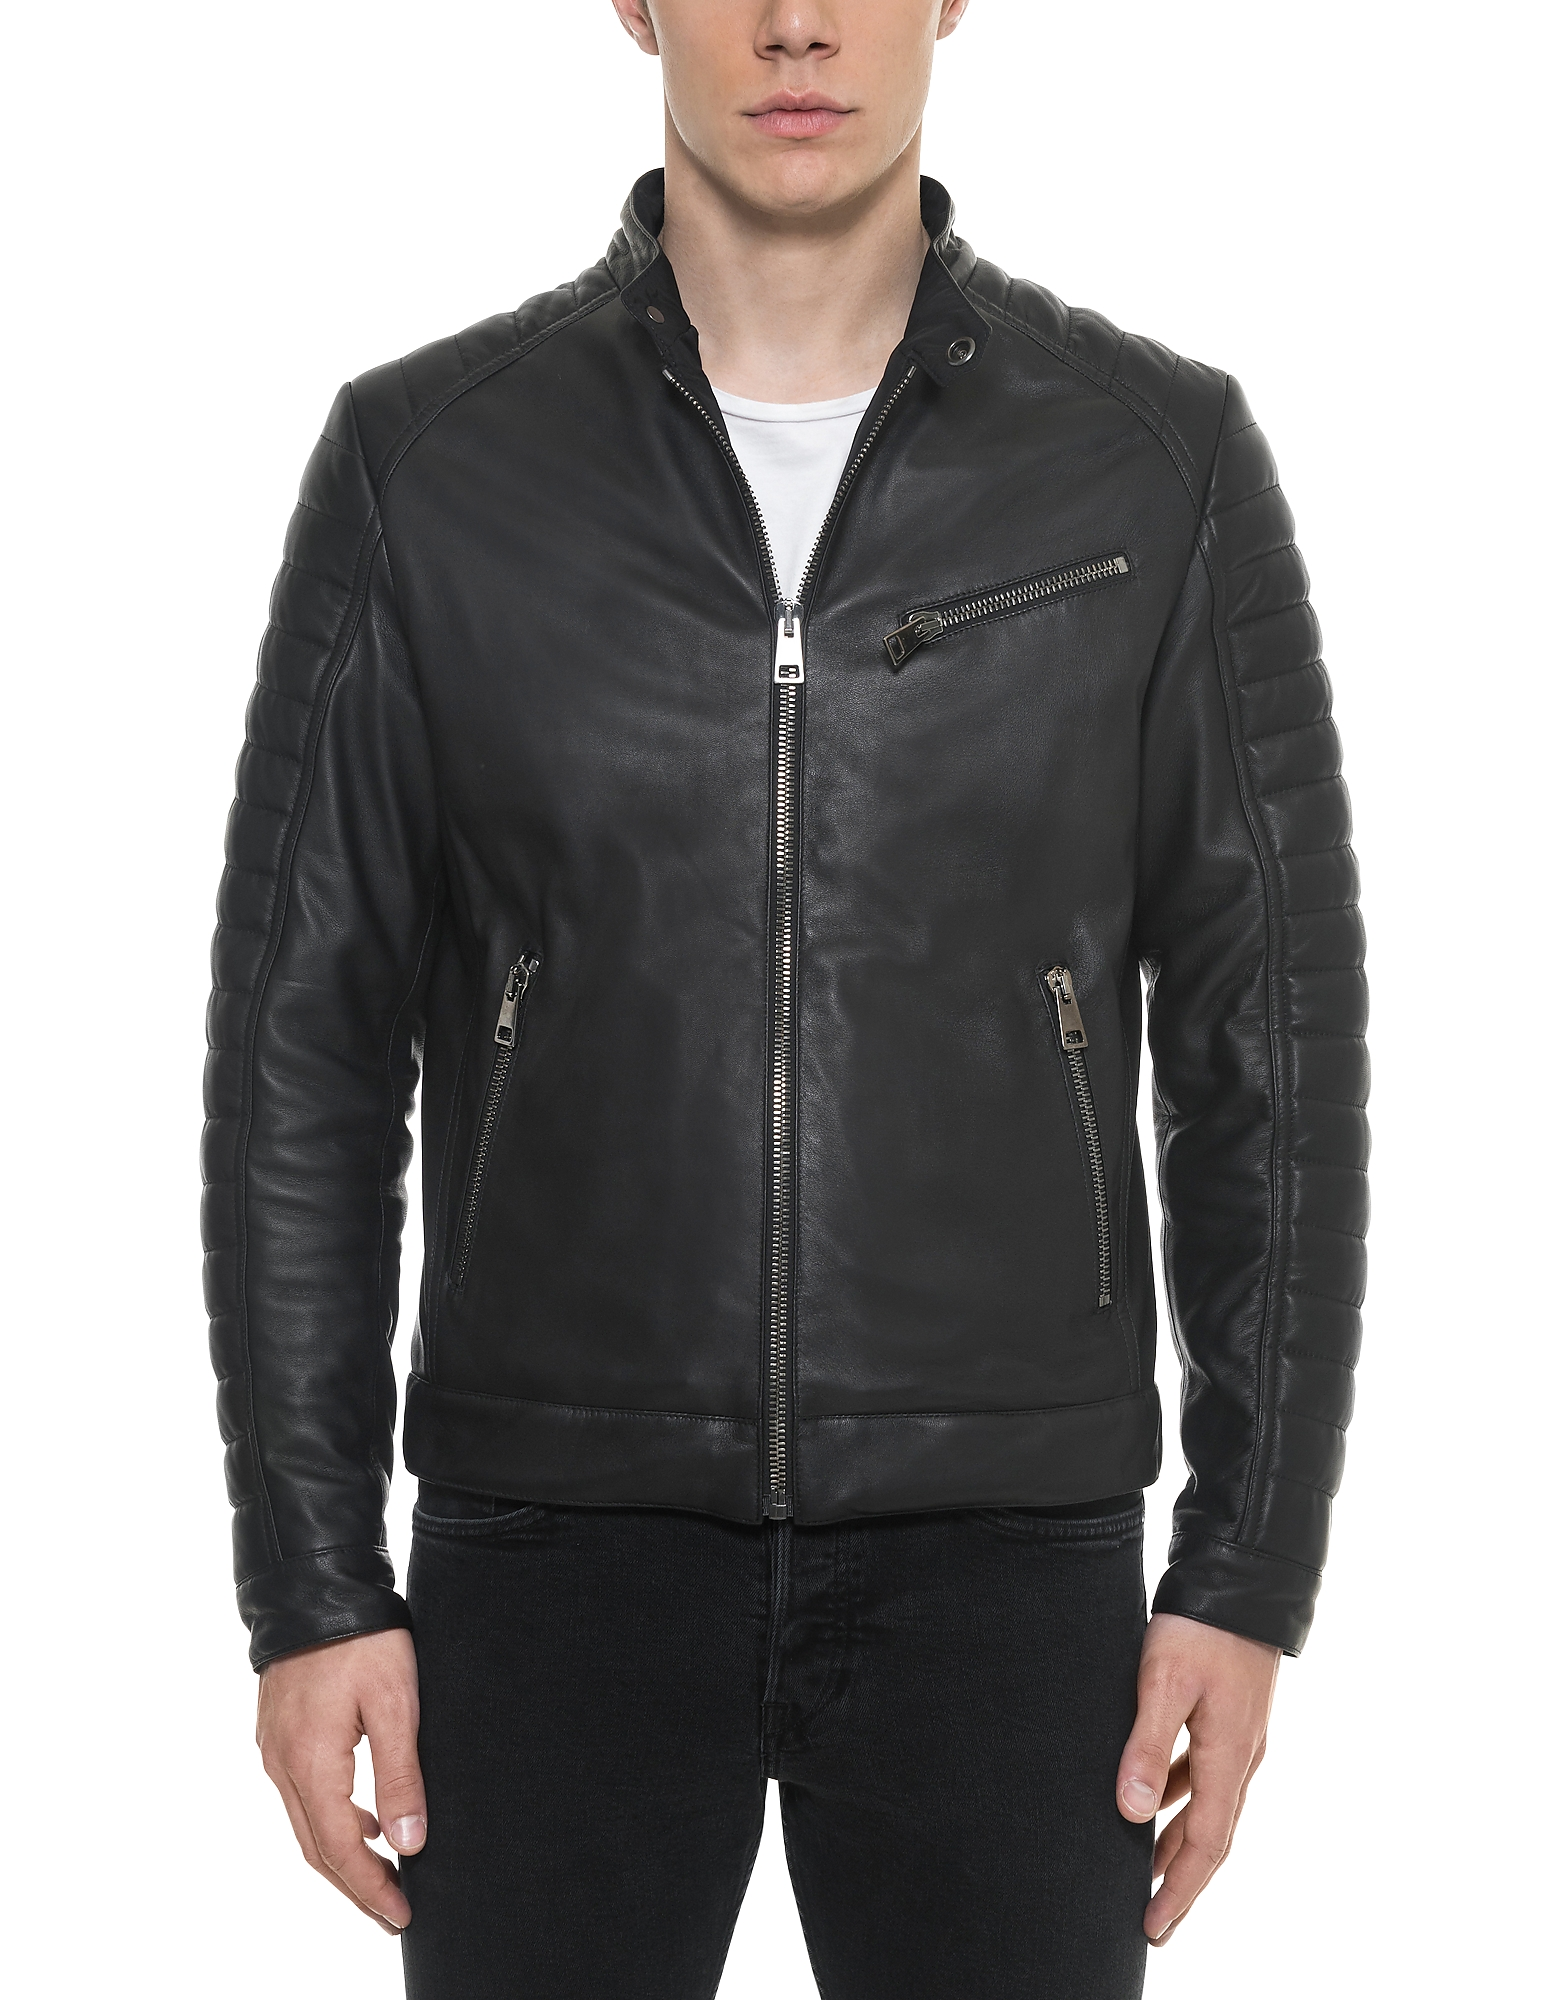 Forzieri Leather Jackets, Black Padded Leather Men's Biker Jacket